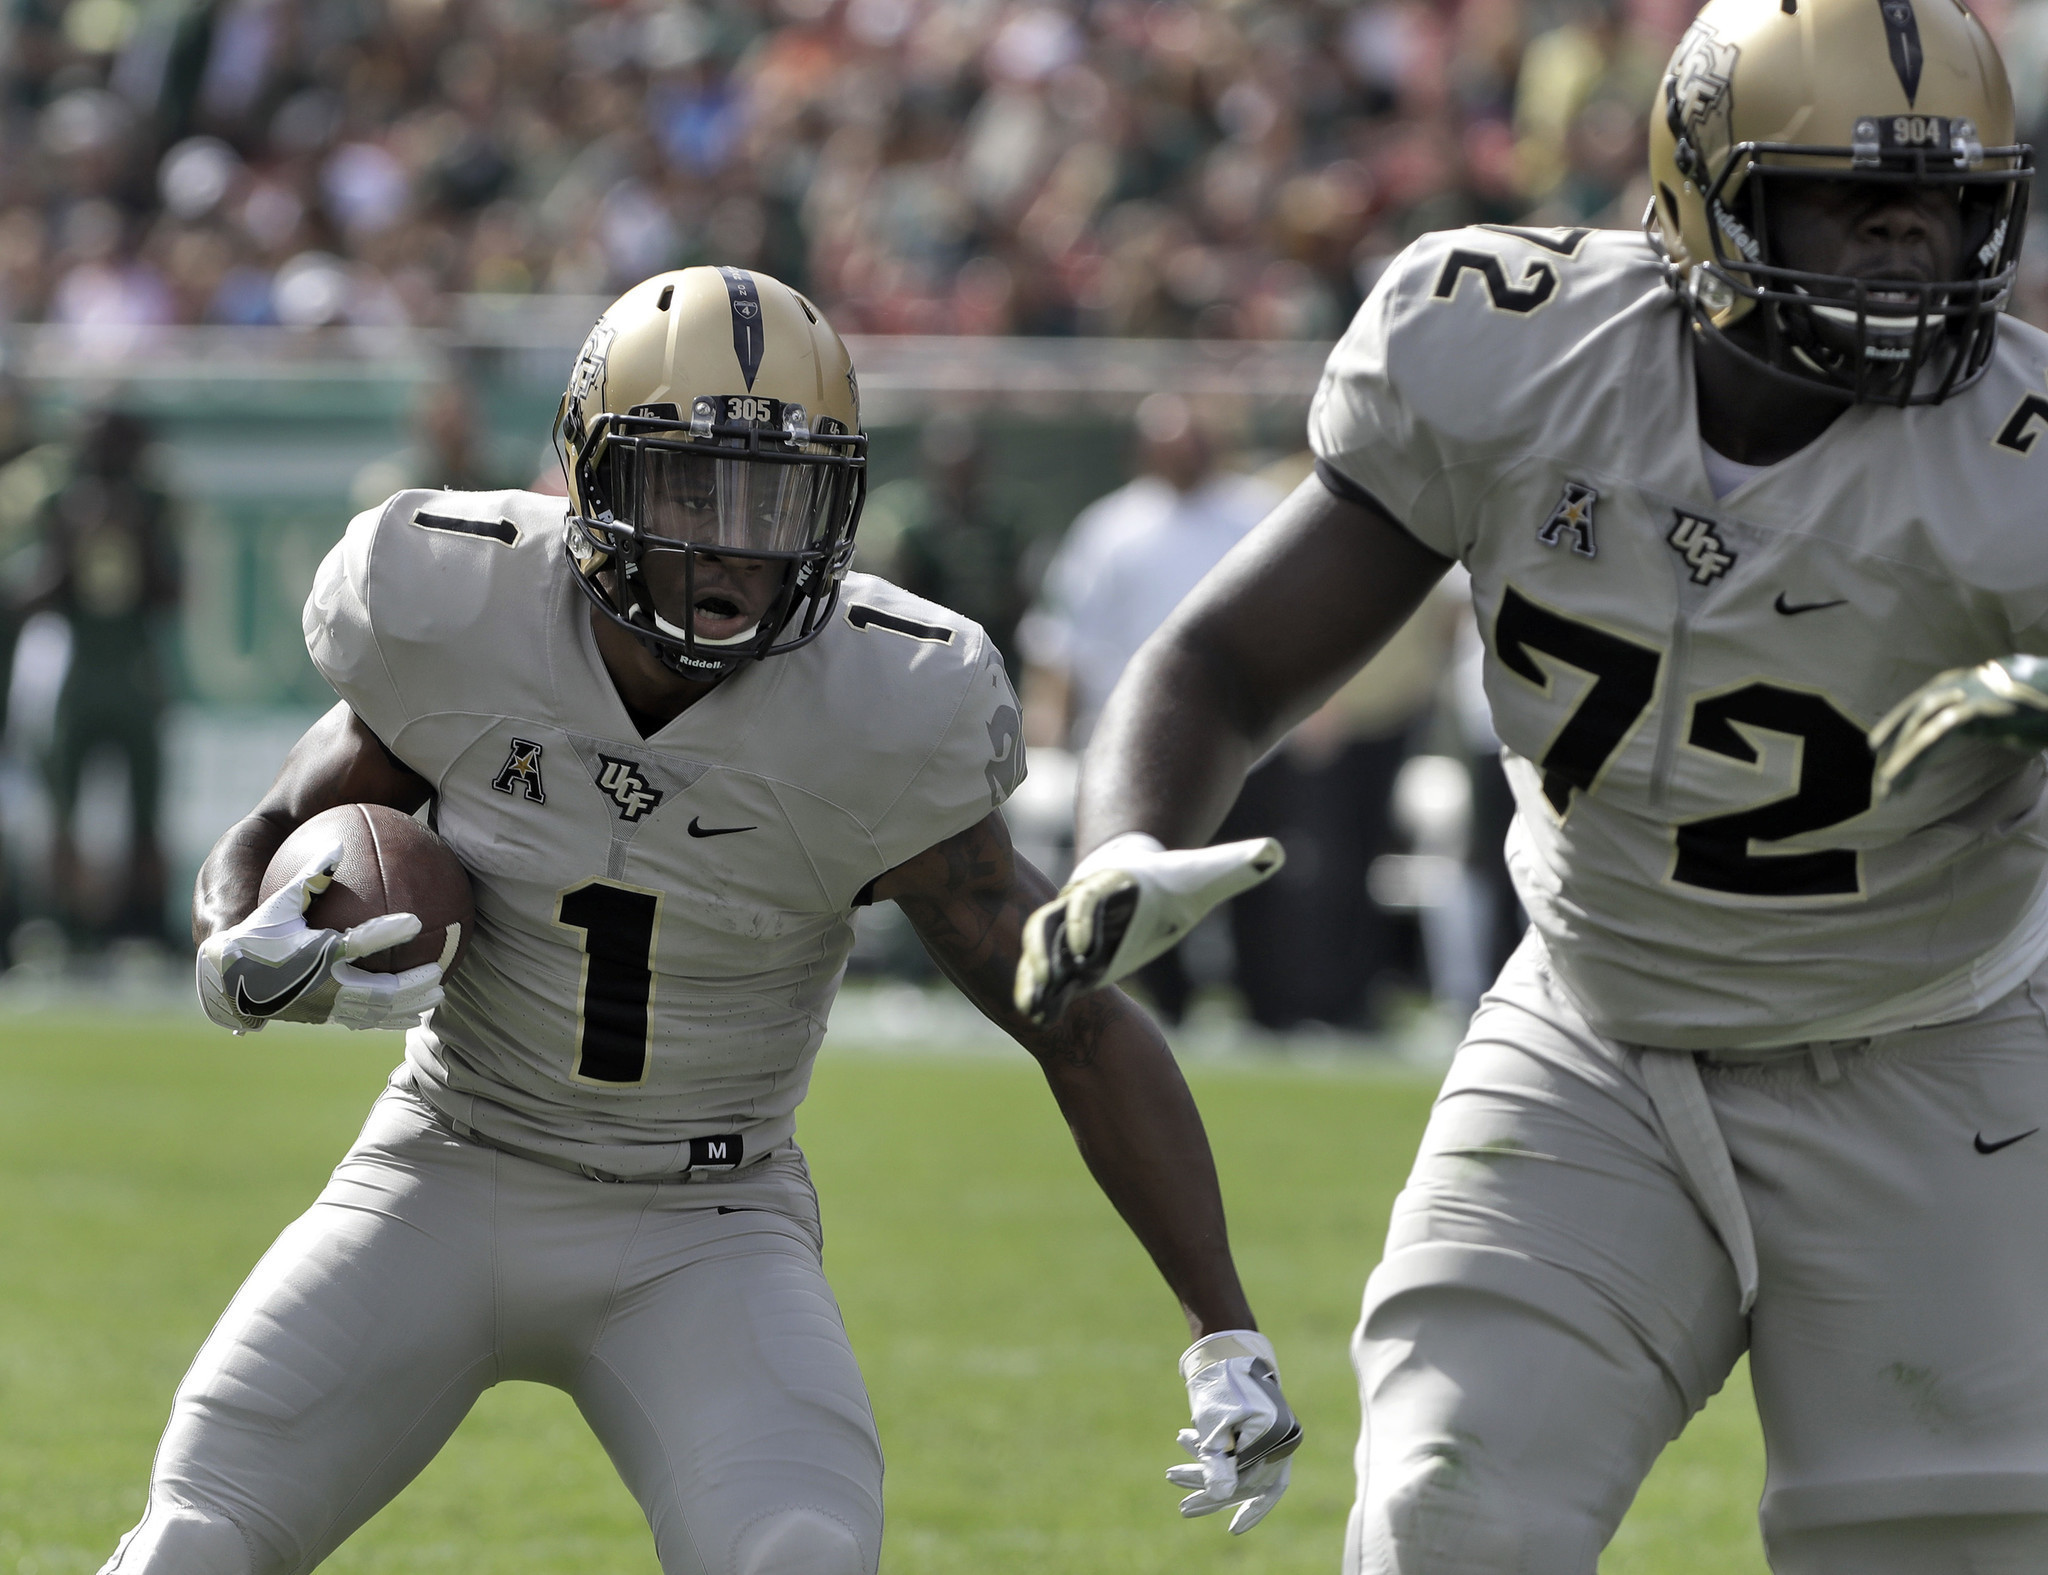 UCF eager to send seniors out with bowl win - Sun Sentinel